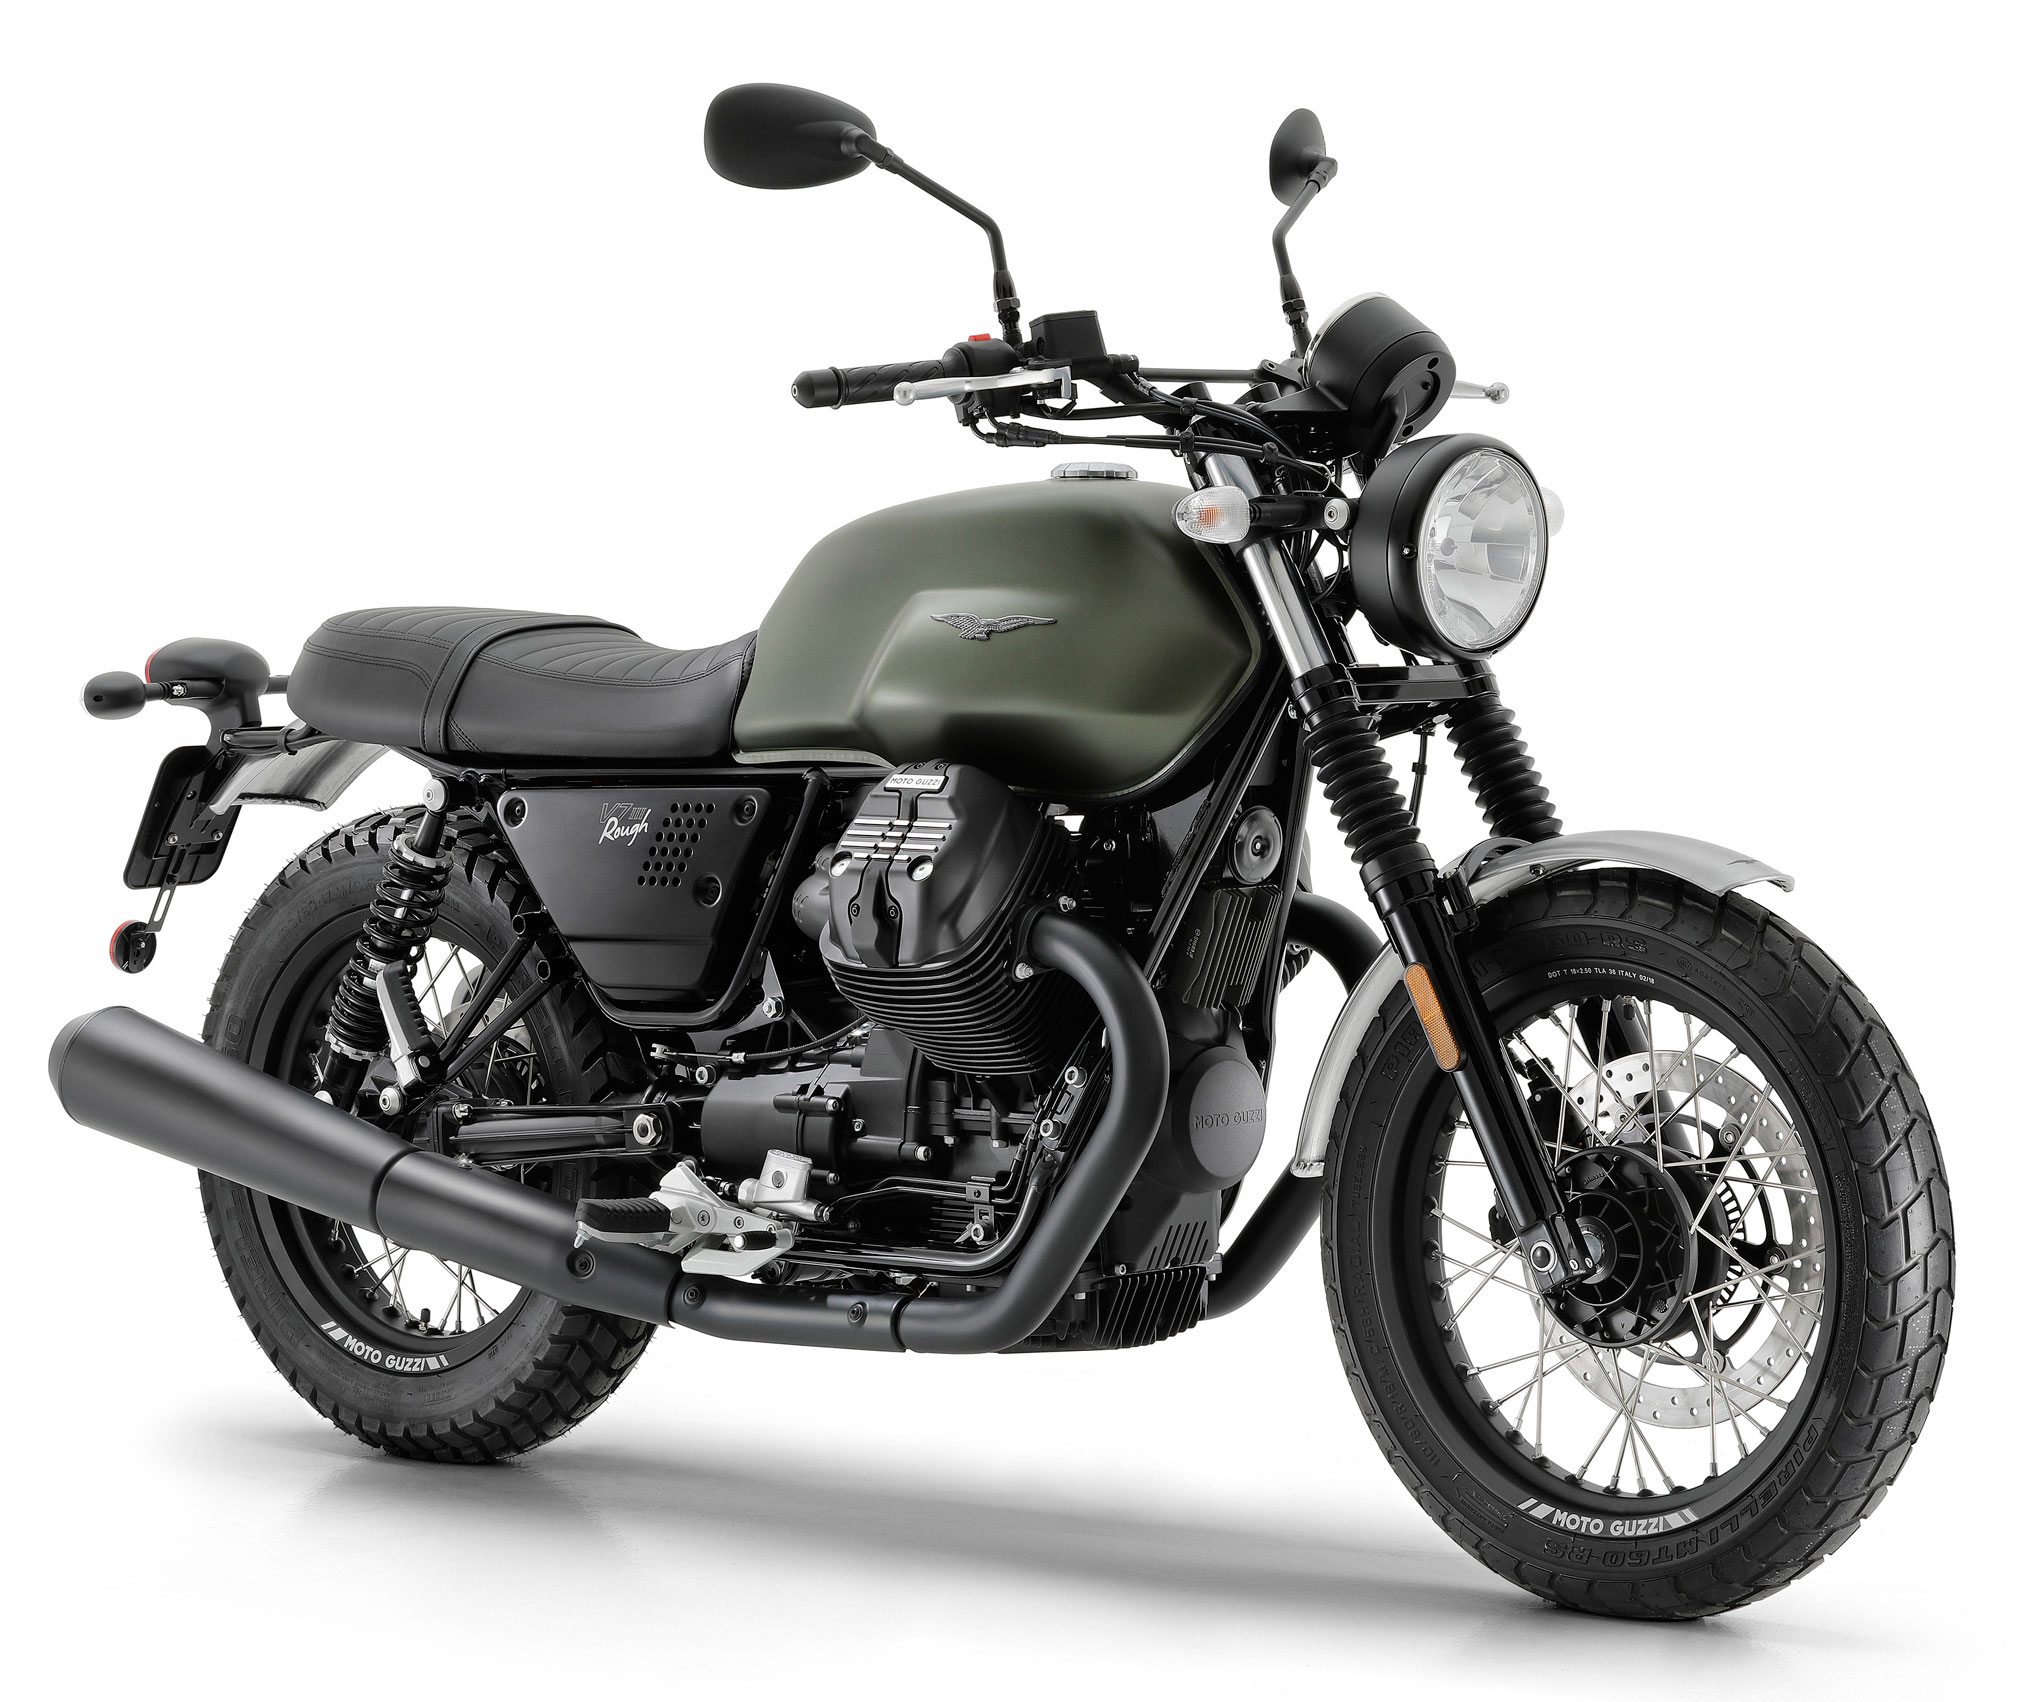 2019 moto guzzi v7 iii rough guide total motorcycle. Black Bedroom Furniture Sets. Home Design Ideas